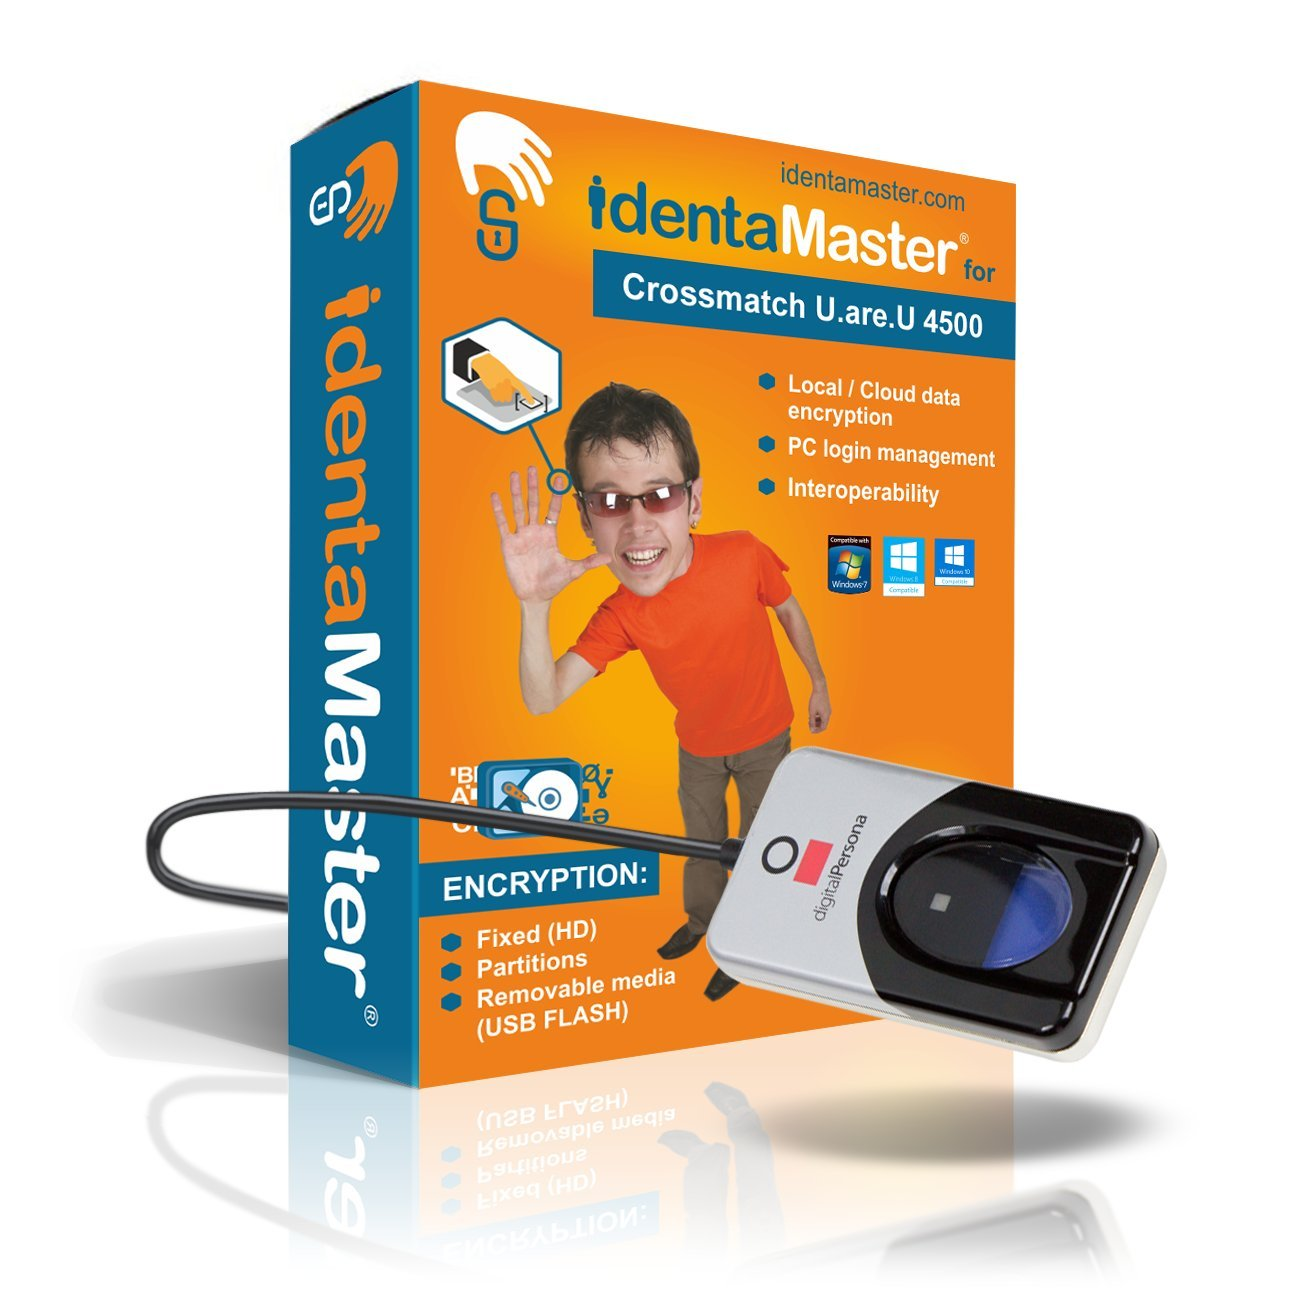 IdentaMaster Biometric Security Software with Crossmatch Digital Persona 4500 Fingerprint Reader/Encryption, PC Login for Windows 7/8/10